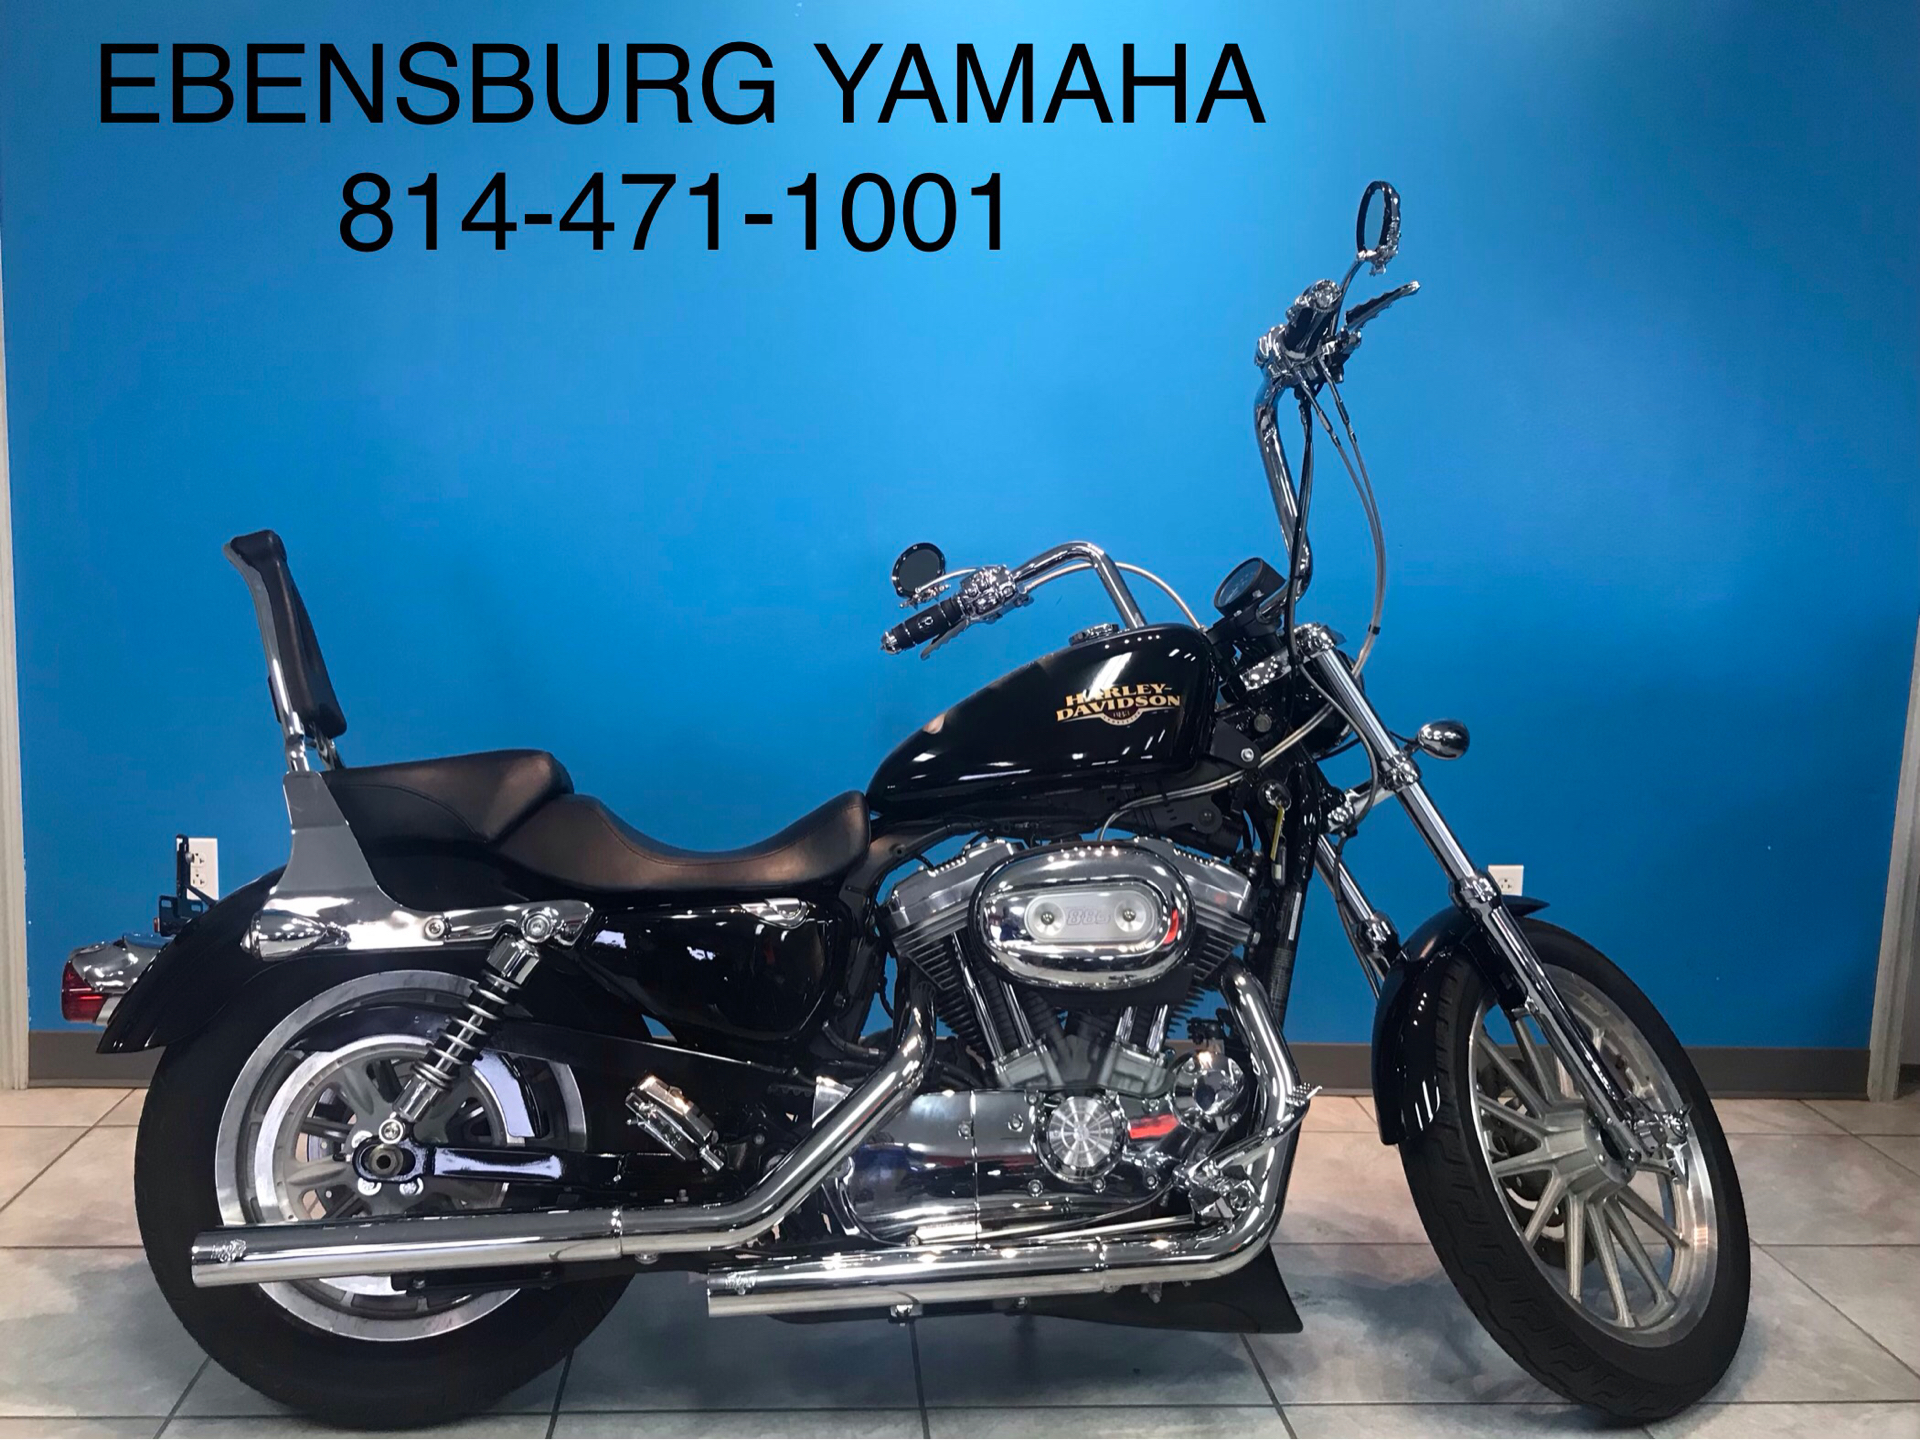 2010 Harley-Davidson Sportster 883 Low for sale 3687